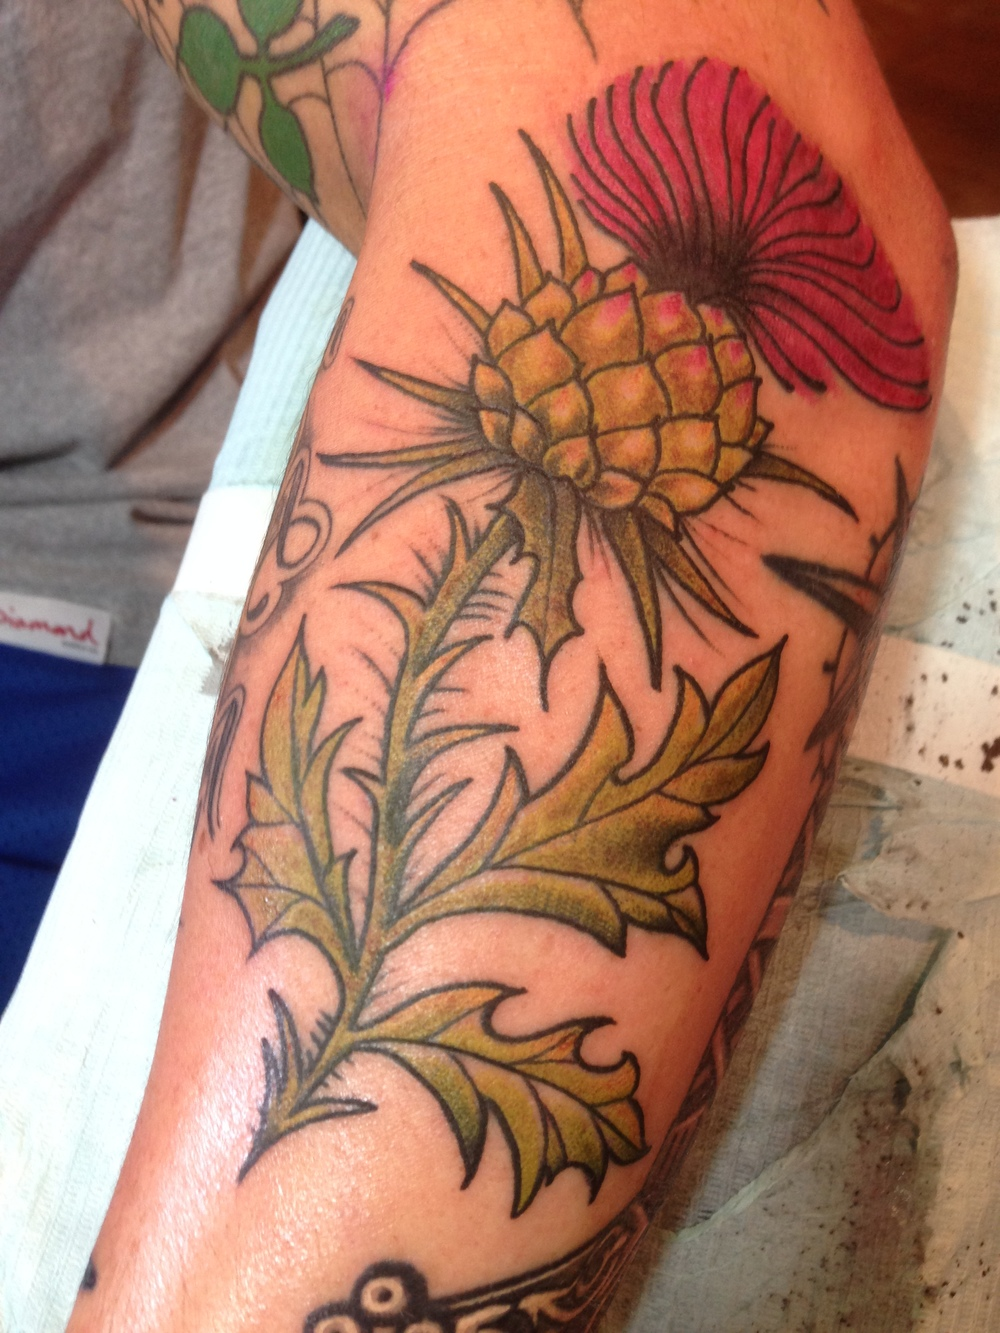 matt-lucci-tattoo-flower-tattoo.JPG